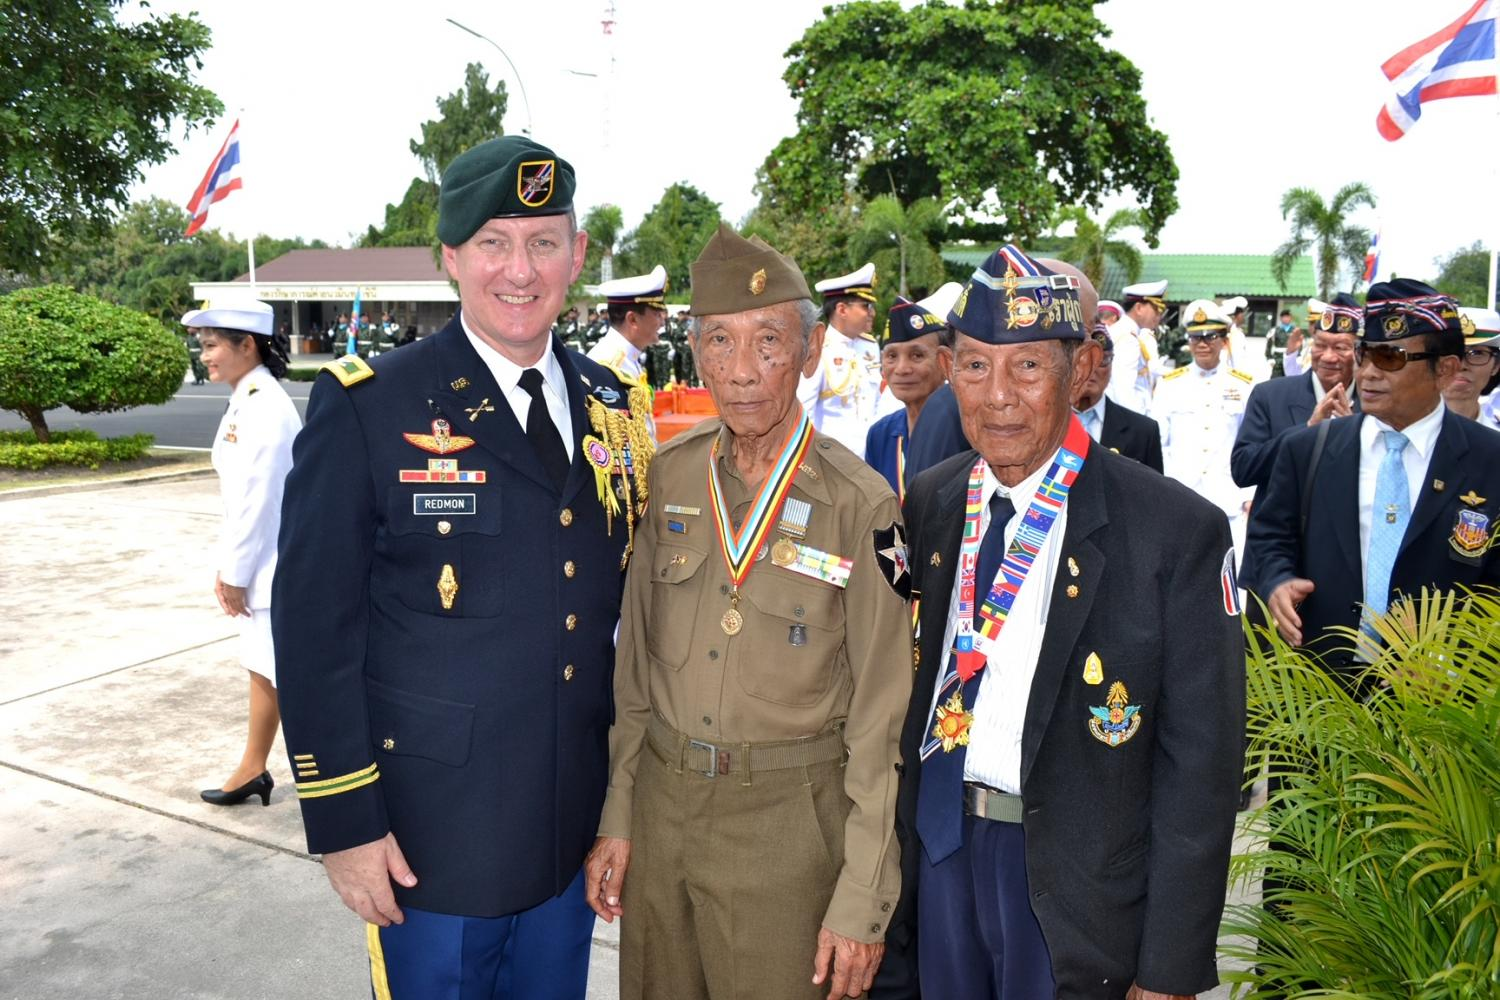 Col Larry Redmon, then Army Attache at the United States embassy in Bangkok, attends the Korean War Veterans Memorial Day at the 21st Infantry Regiment in Chon Buri in remembrance of Thai soldiers sent to fight from 1950 to 1953.Office of the US Army Attache